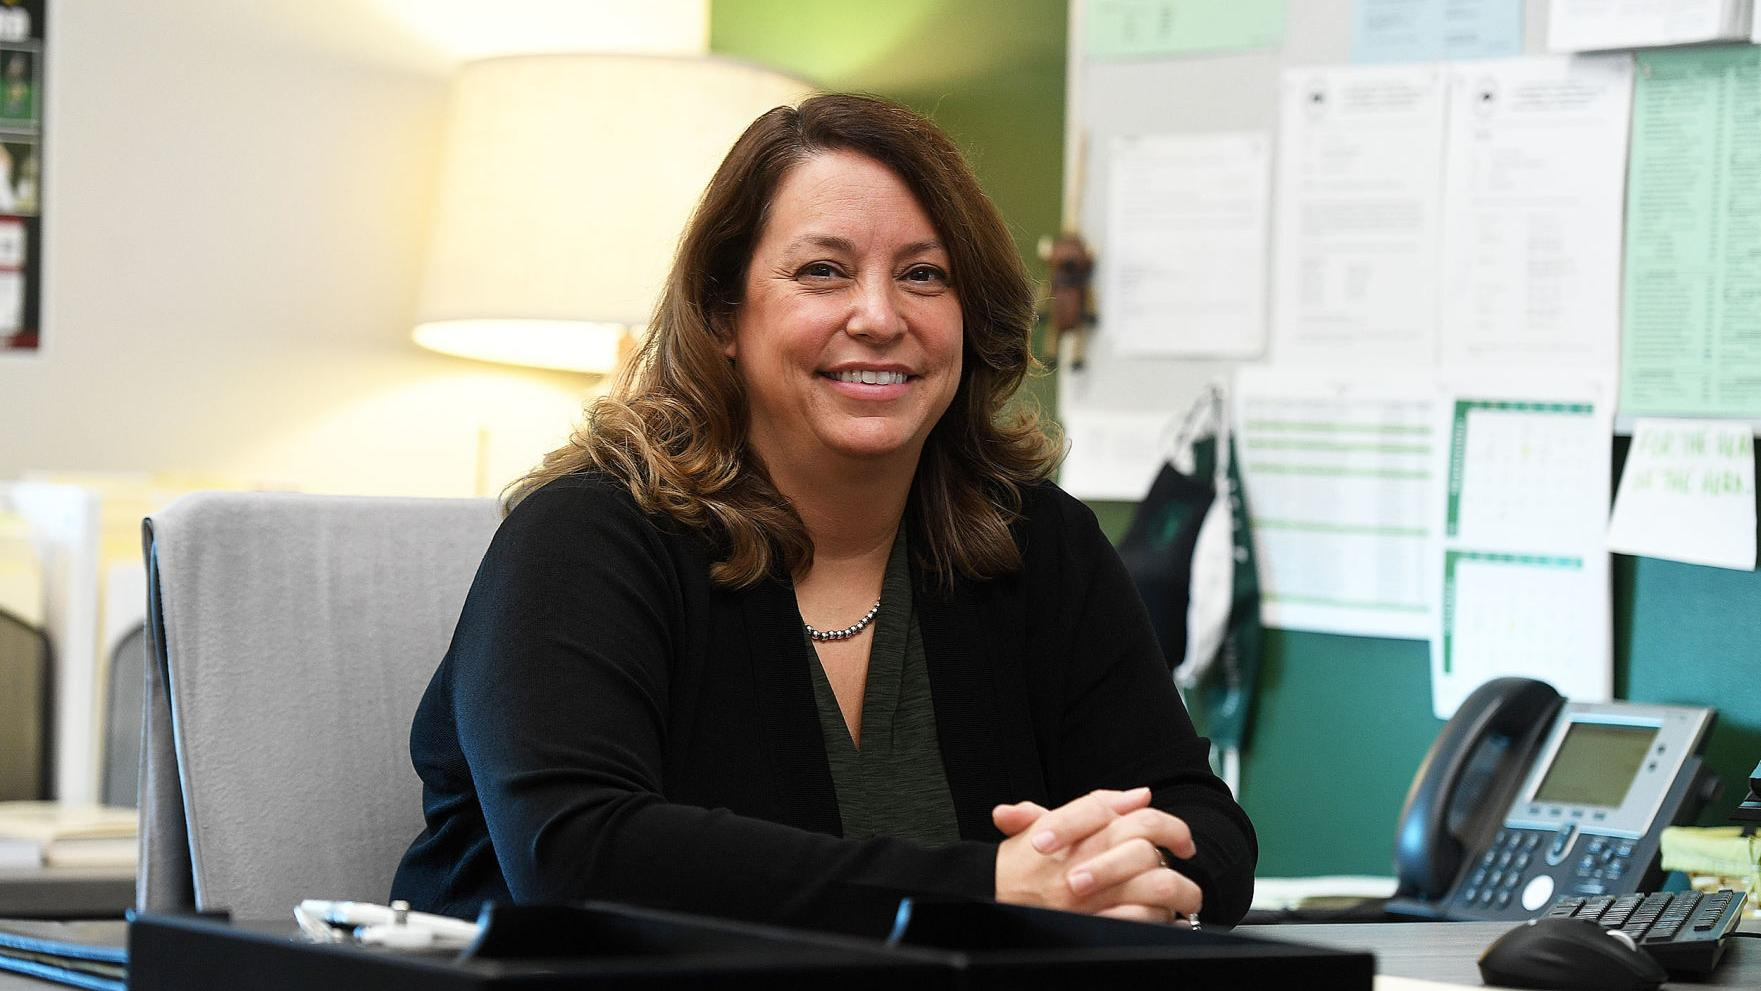 Carlisle superintendent Spielbauer accepts position with New Story Schools and River Rock Academy